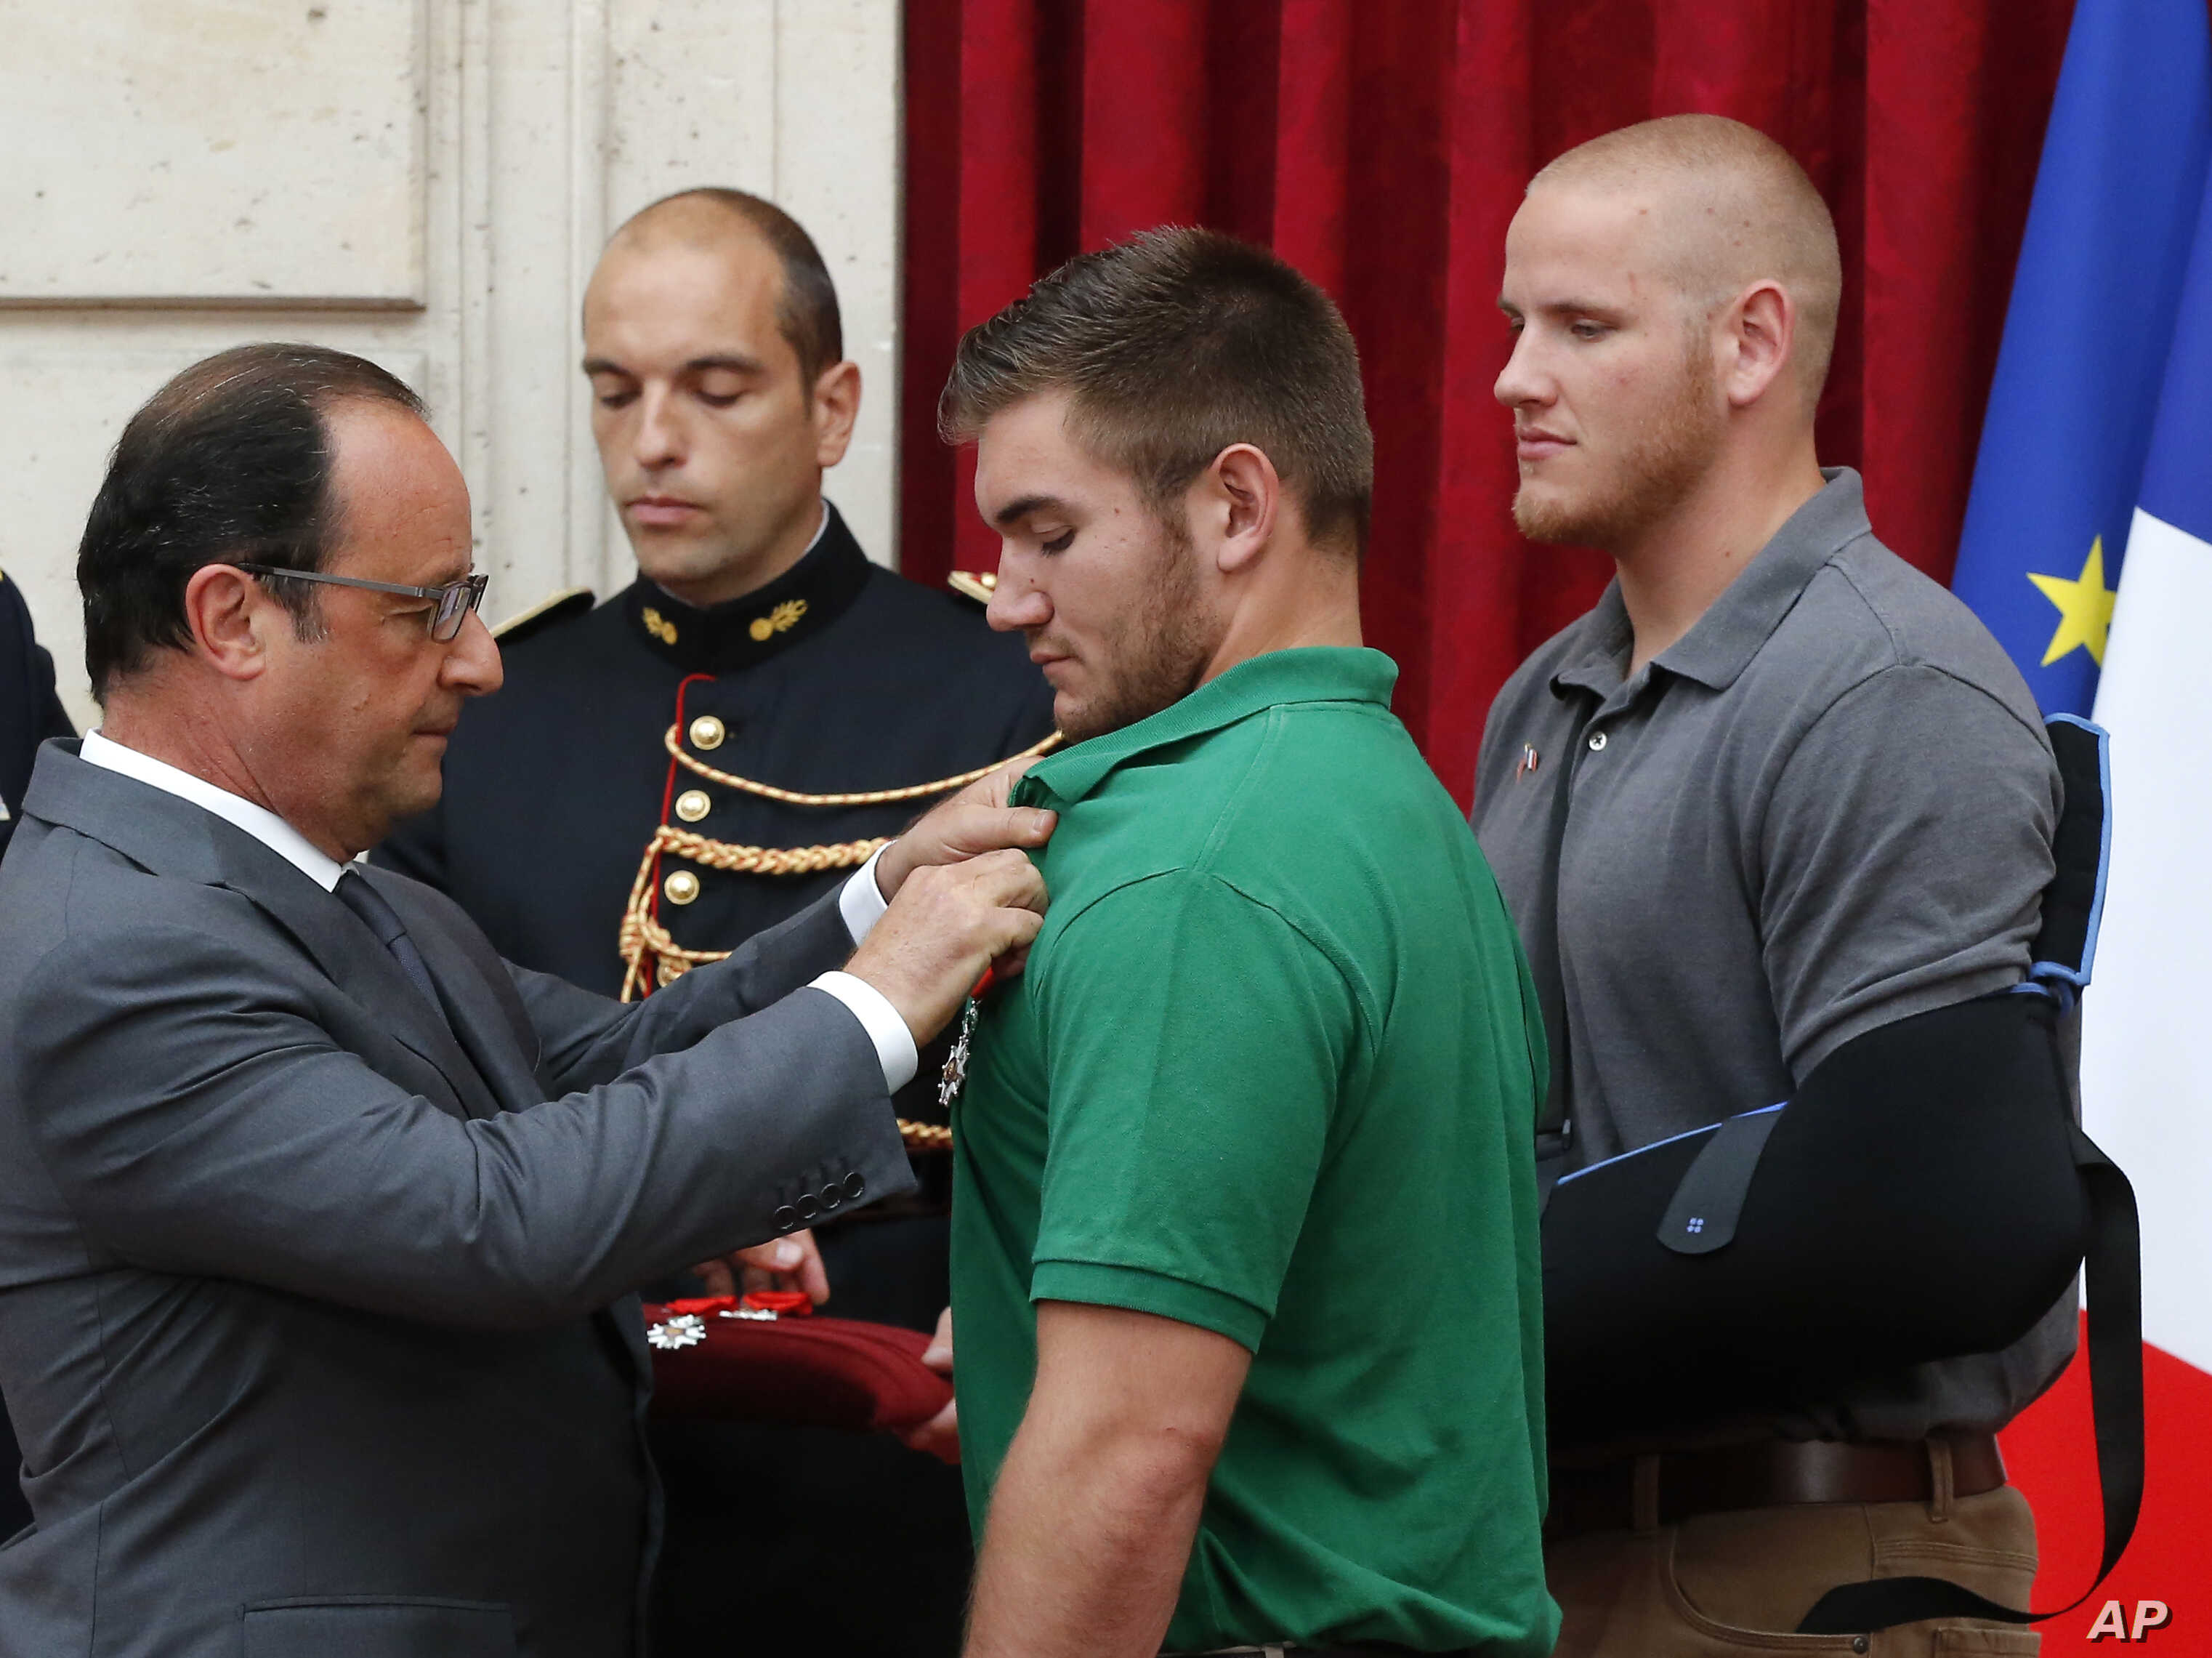 French President Francois Hollande, left, awards with the Legion of Honor Alek Skarlatos a U.S. National Guardsman from Roseburg, Oregon, while  U.S. Airman Spencer Stone, right, looks on at the Elysee Palace, Monday Aug.24, 2015 in Paris, France.